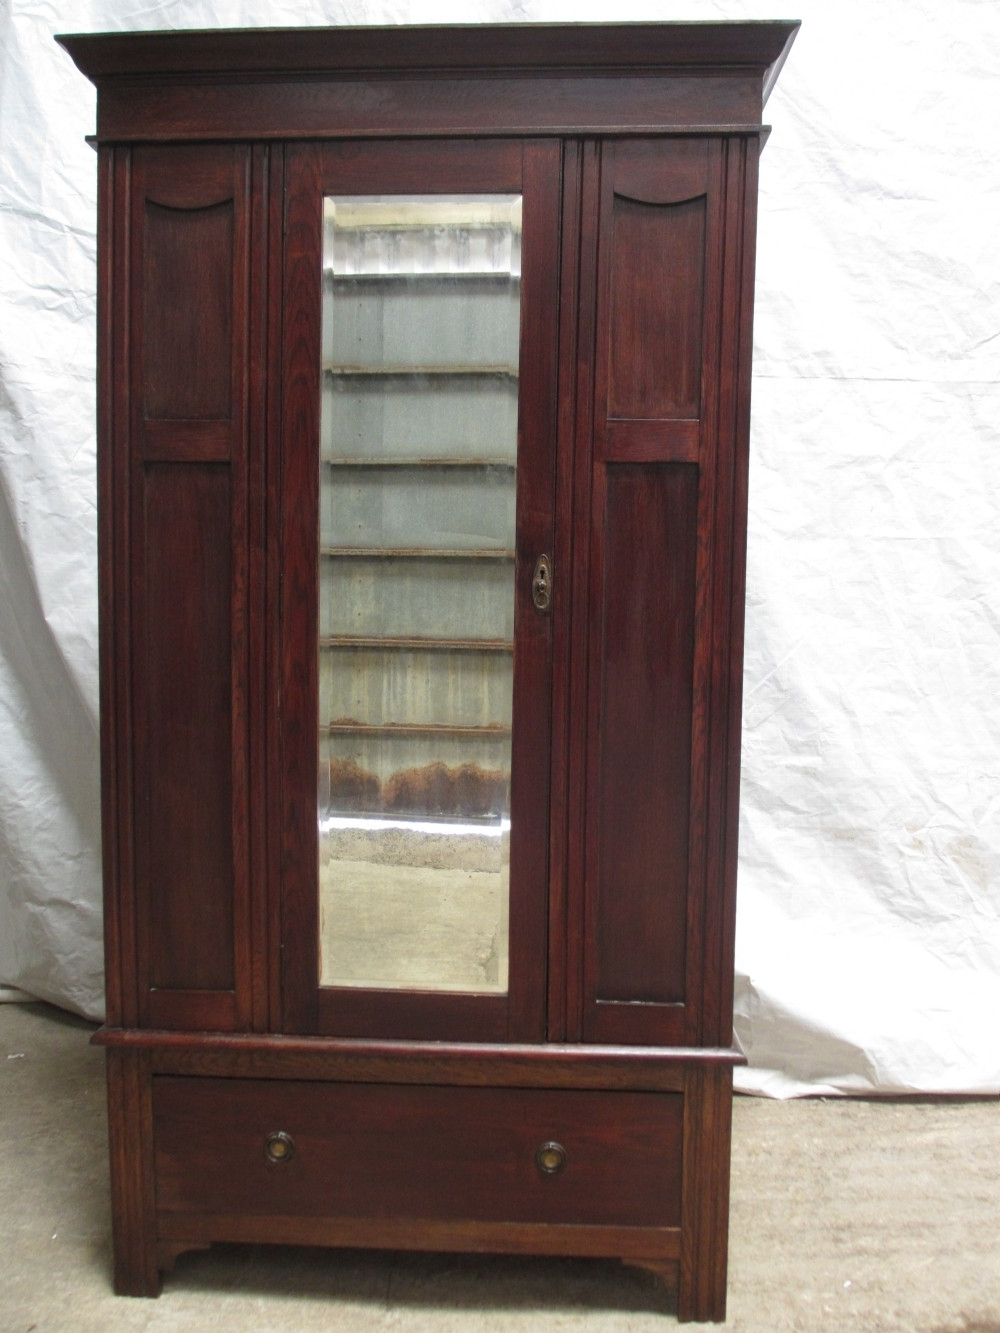 Victorian / Edwardian Oak Single Mirror Door Wardrobe With Drawer Pertaining To Newest Victorian Wardrobes (View 10 of 15)